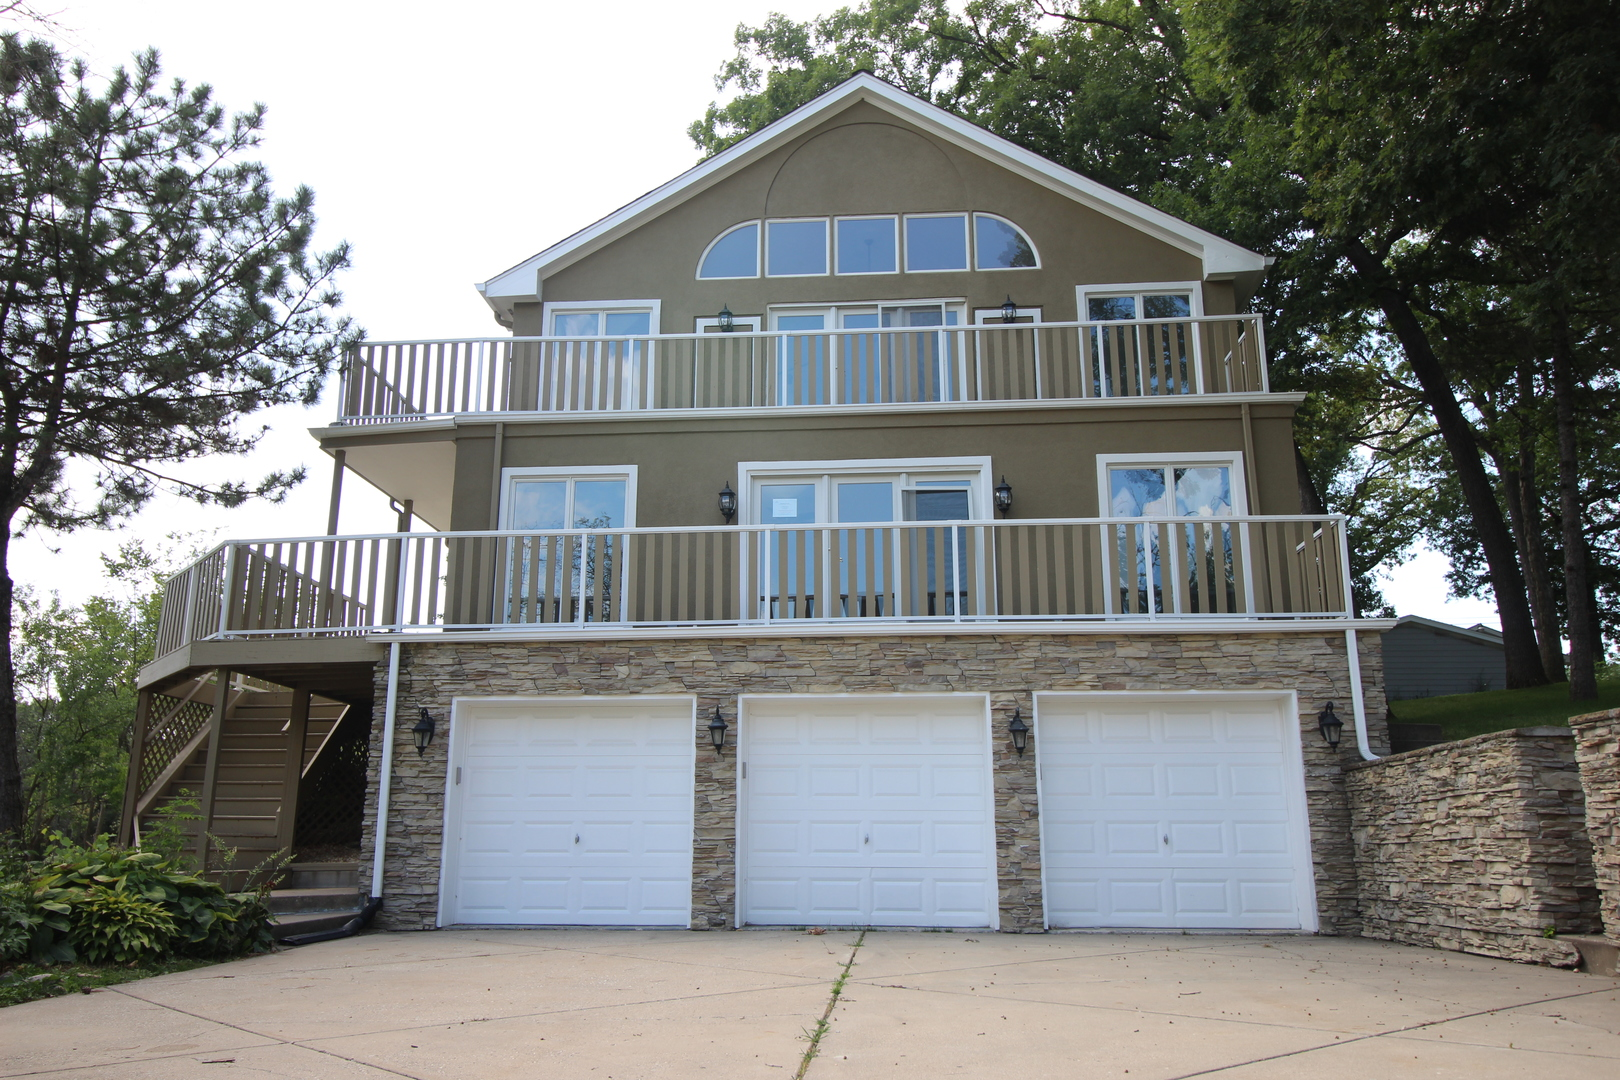 1100 West 87th, Willow Springs, Illinois, 60480